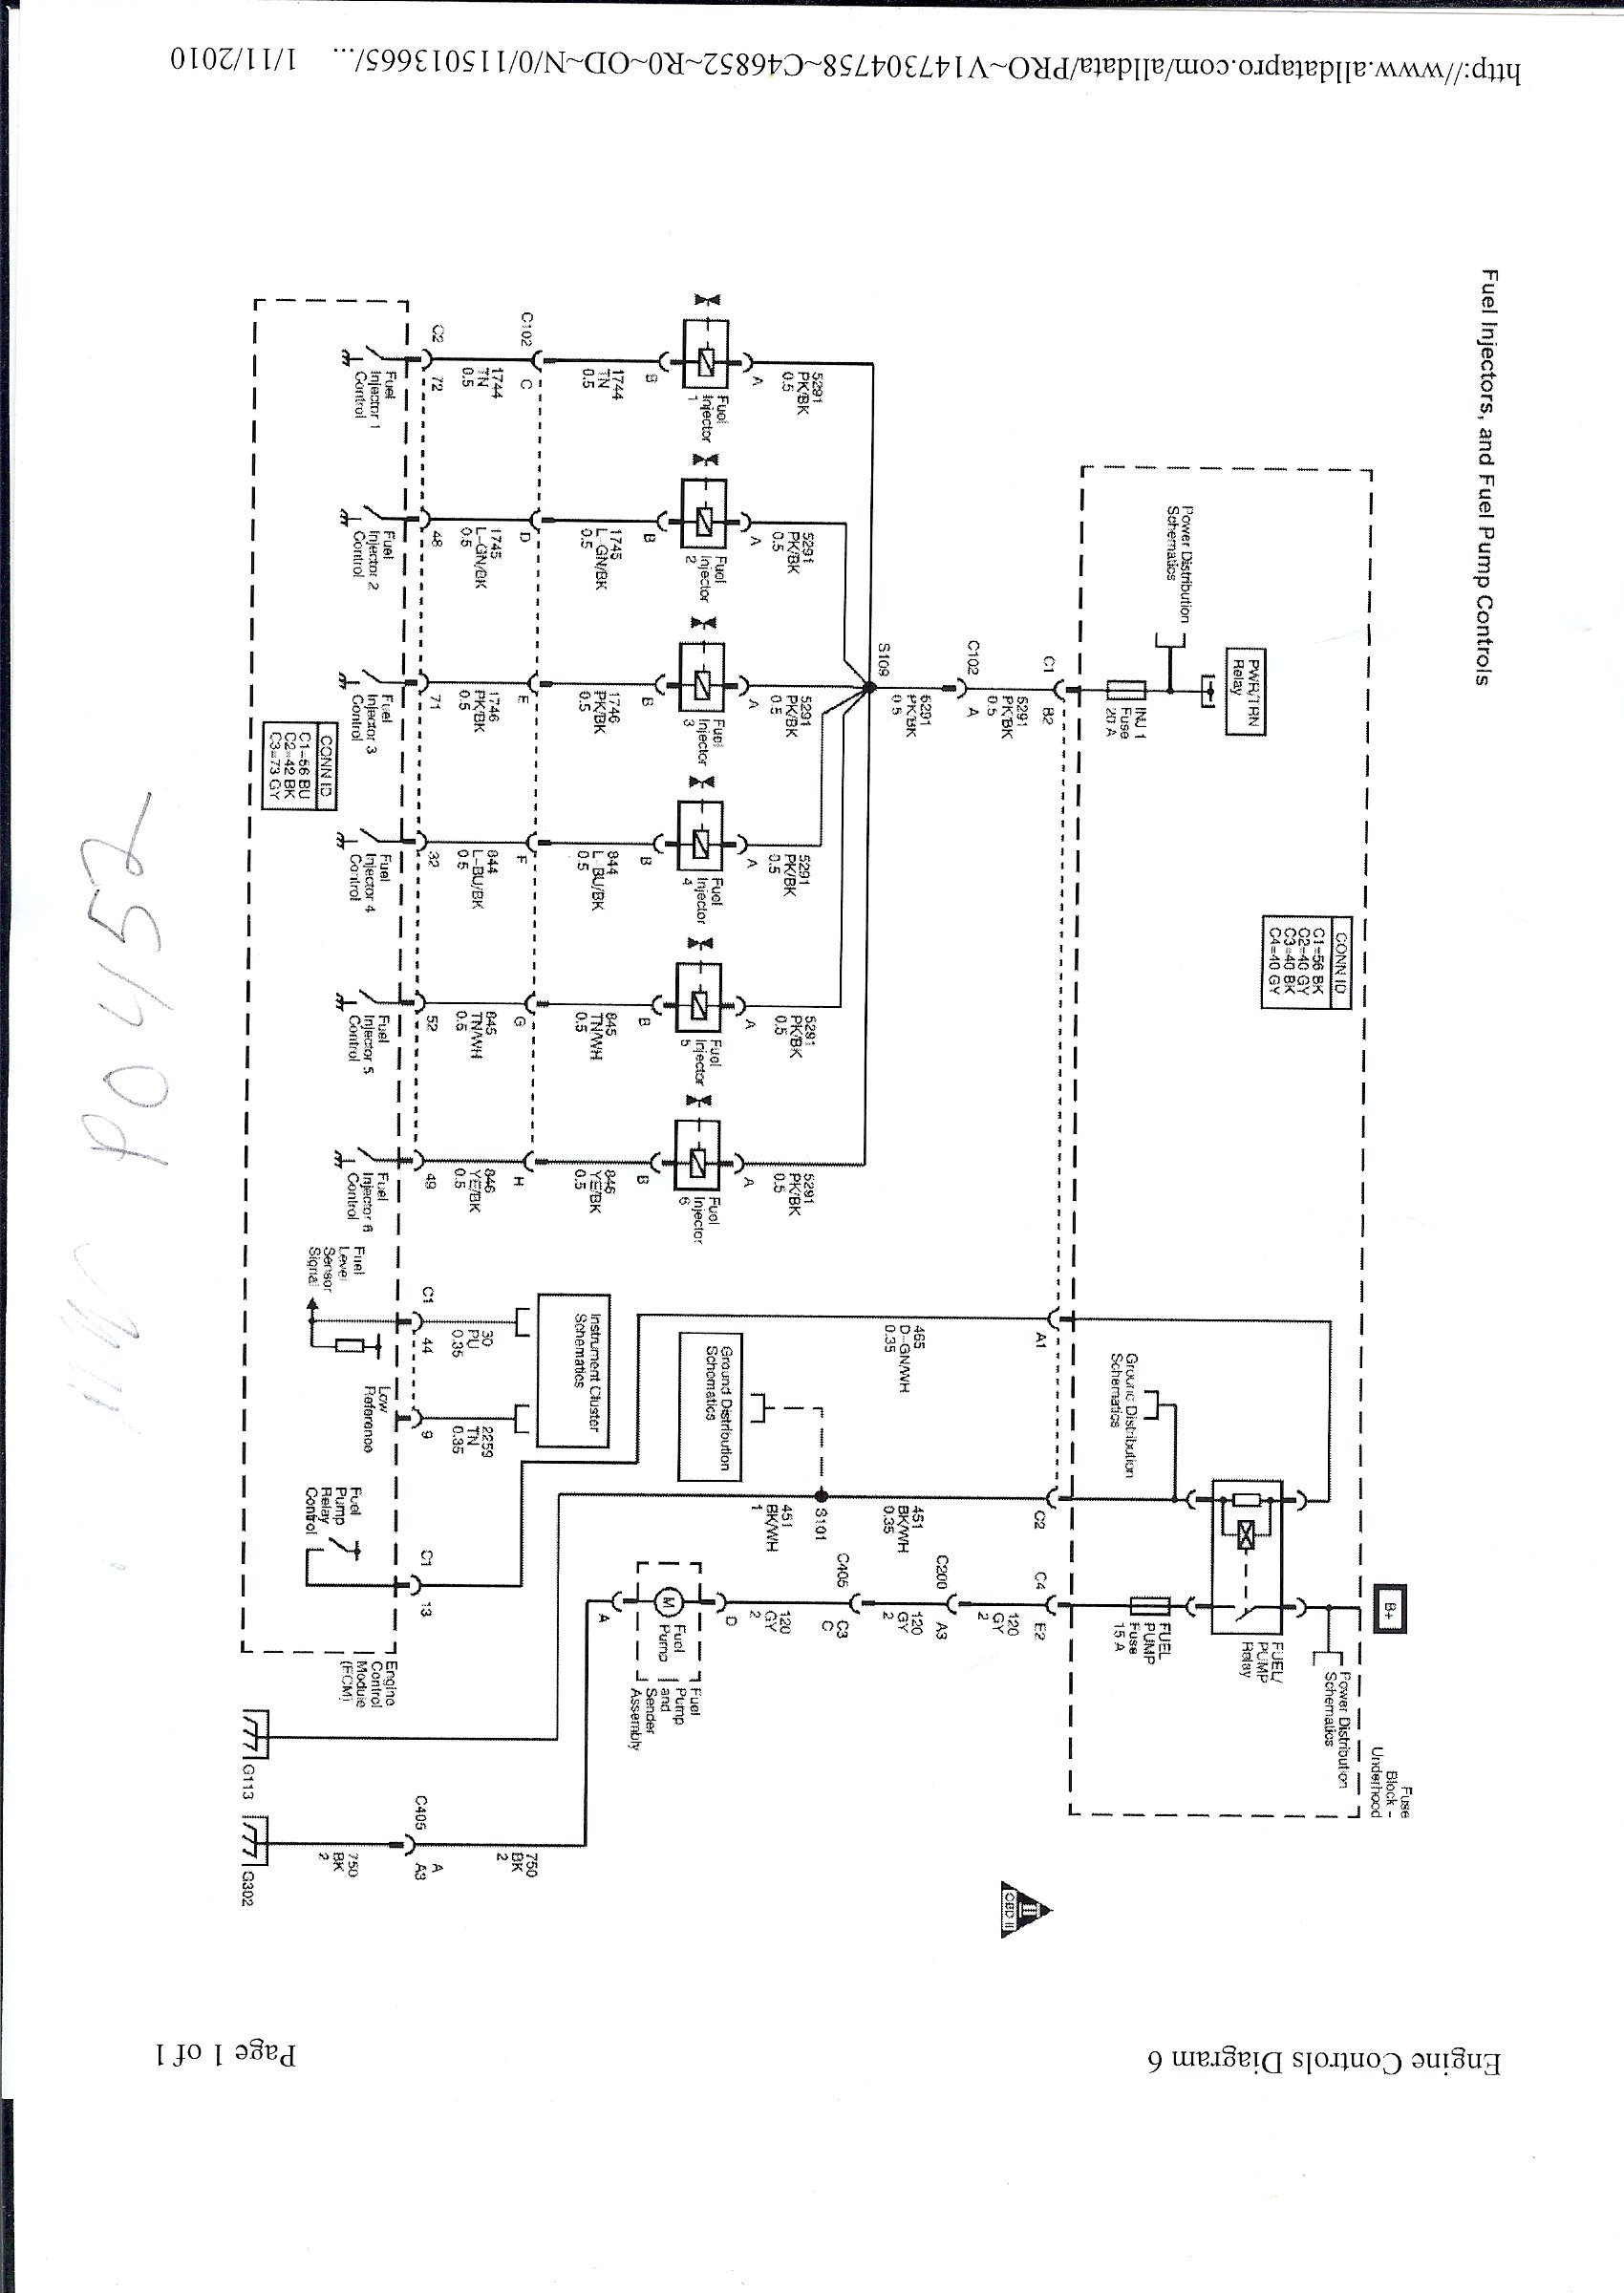 2010 01 13_020441_wiring_diagram 2006 chevy impala fuel pump went out replaced pump still will 2014 Impala Wiring Diagram Schematic at cos-gaming.co